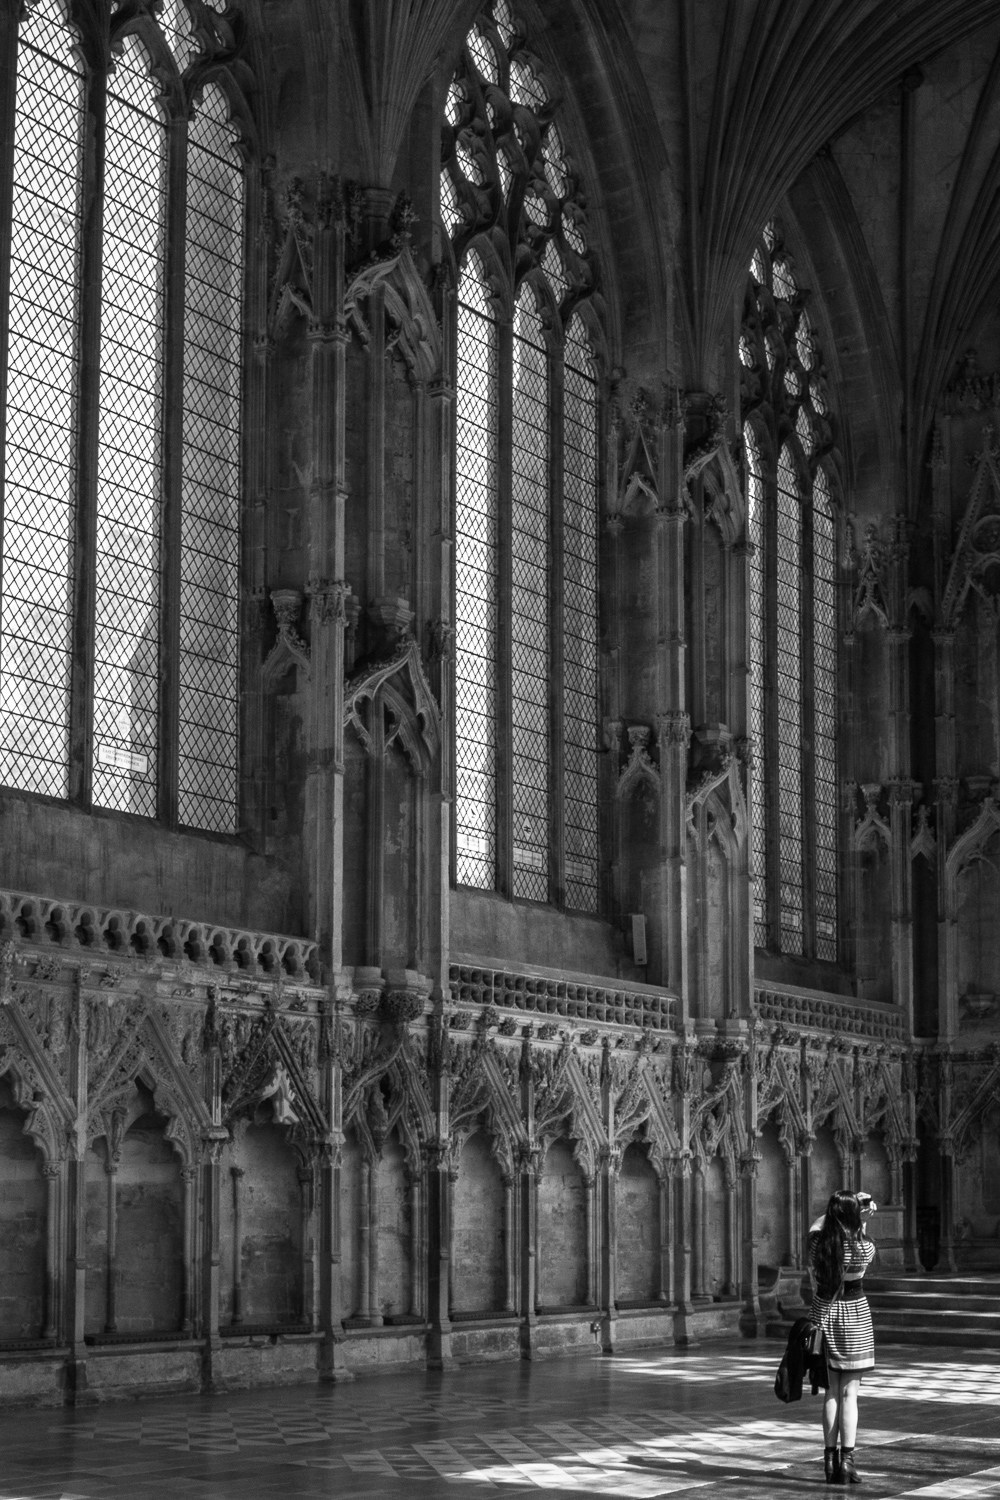 Ely Cathedral, England, 2018